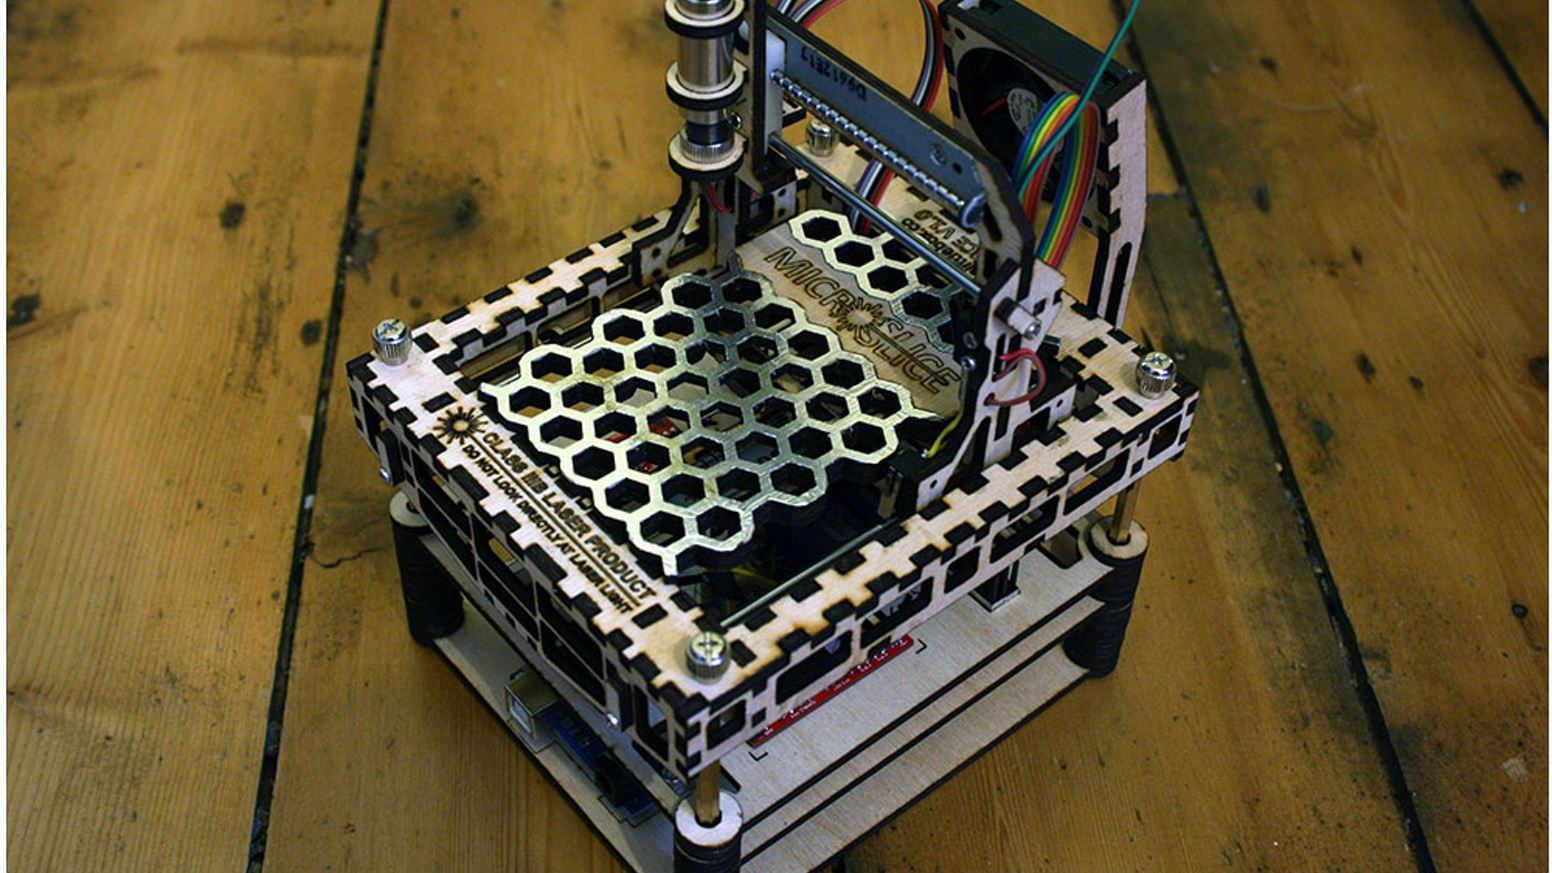 The MicroSlice | A Mini Arduino Laser Cutter & Engraver  by Gregory